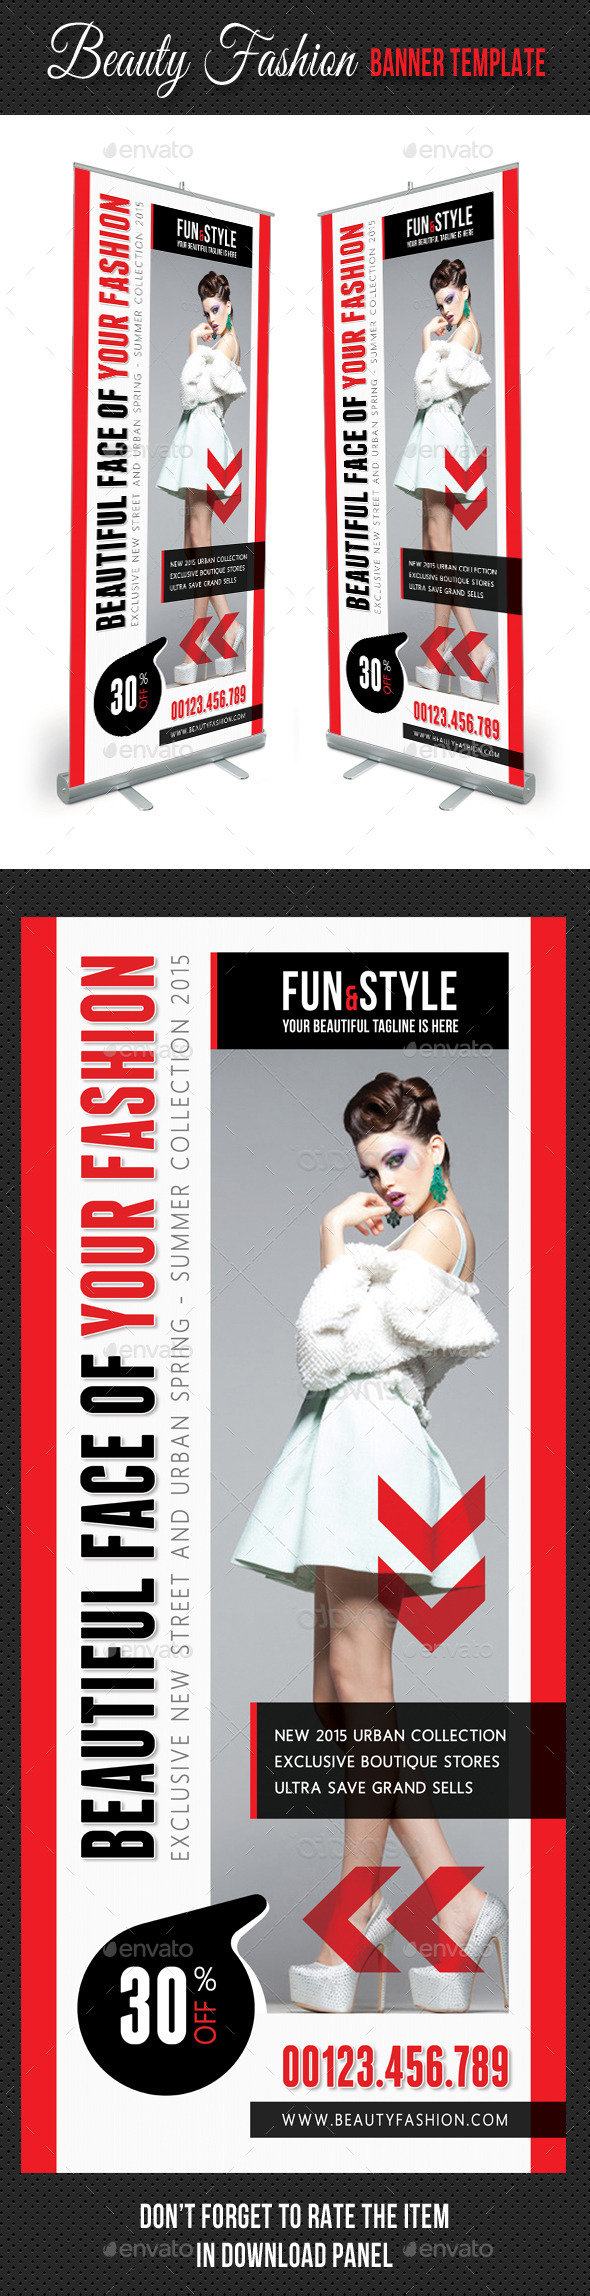 Beauty Fashion Banner Template V01 - Signage Print Templates